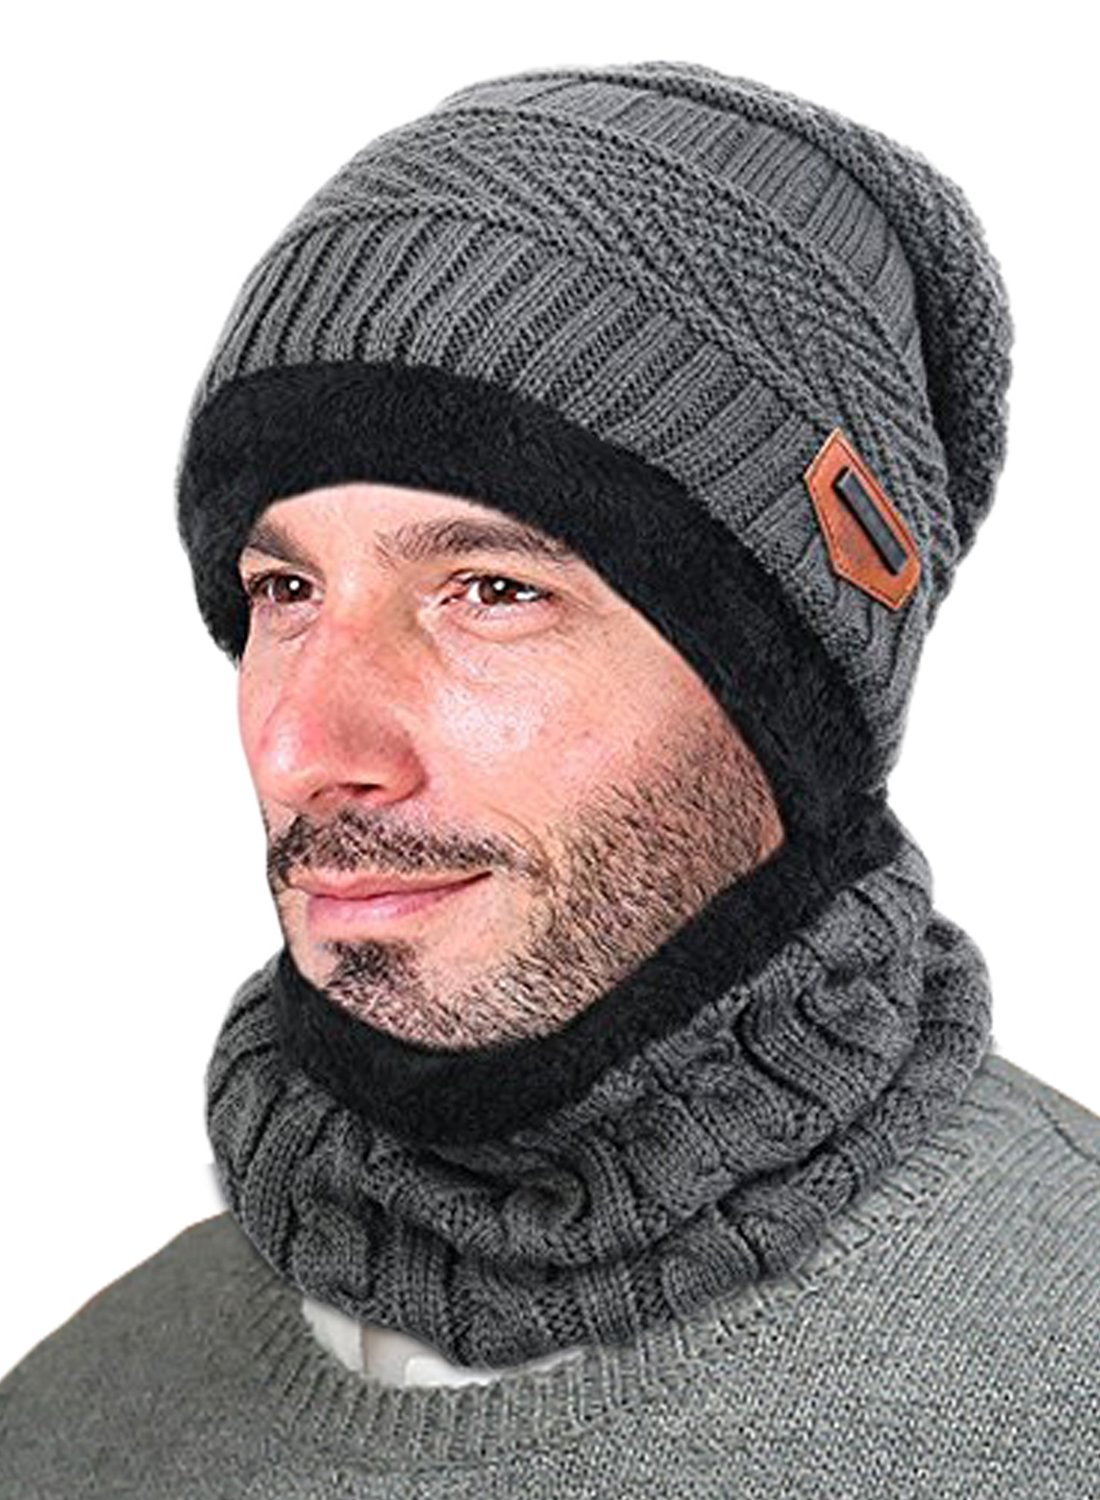 T-wilker Beanie Hat Scarf Set Chunky Soft Stretch Cable Warm Thick Knit Hat Fleece lining Tough Headwear (Grey)